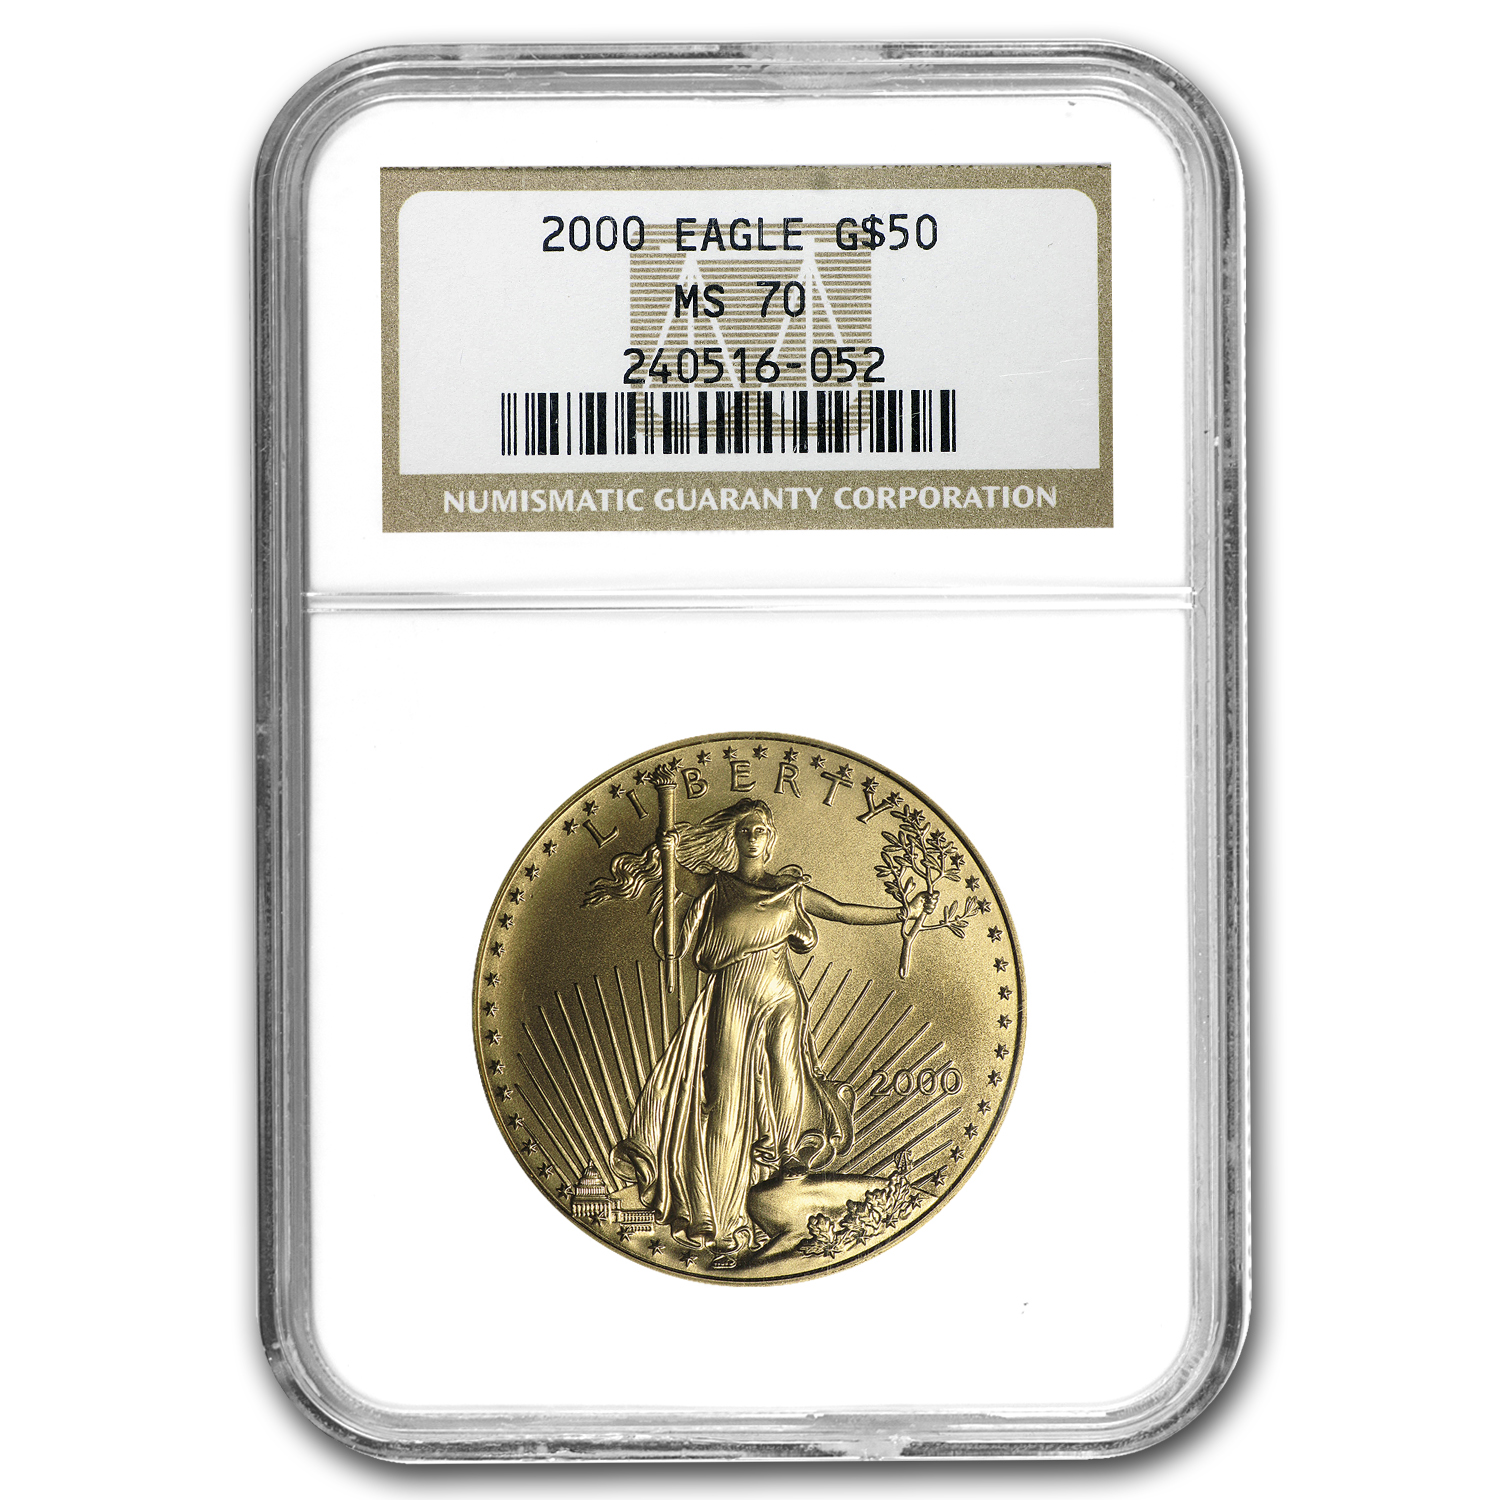 2000 1 oz Gold American Eagle MS-70 NGC